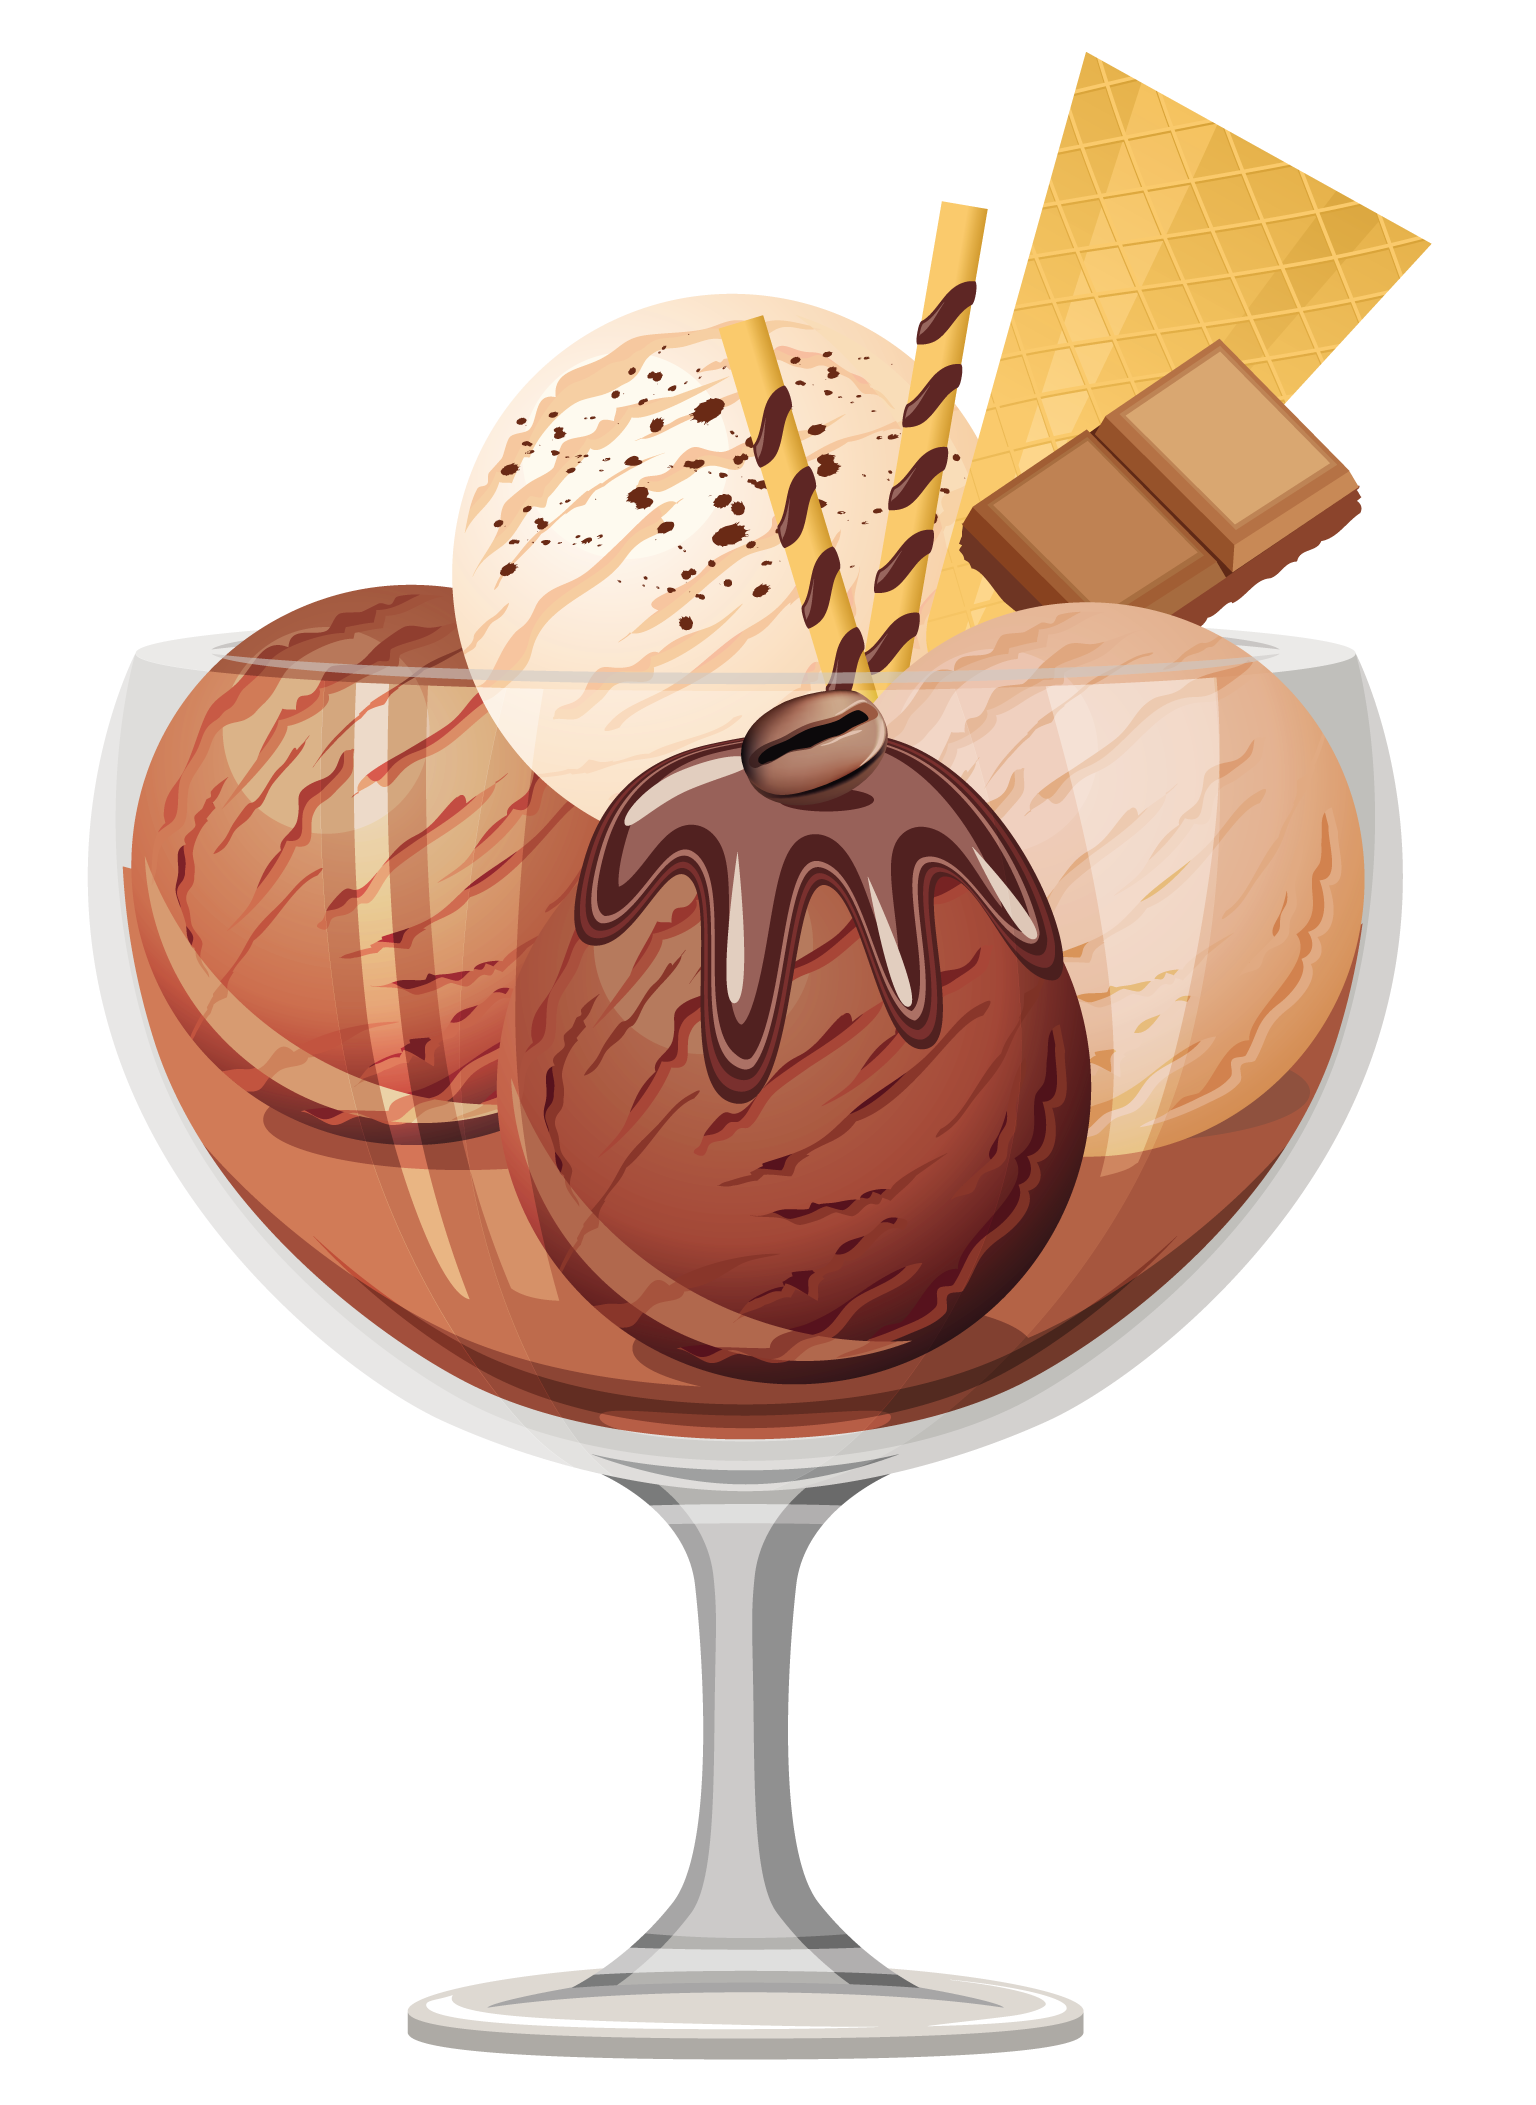 Strawberries clipart strawberry sundae. Transparent chocolate ice cream